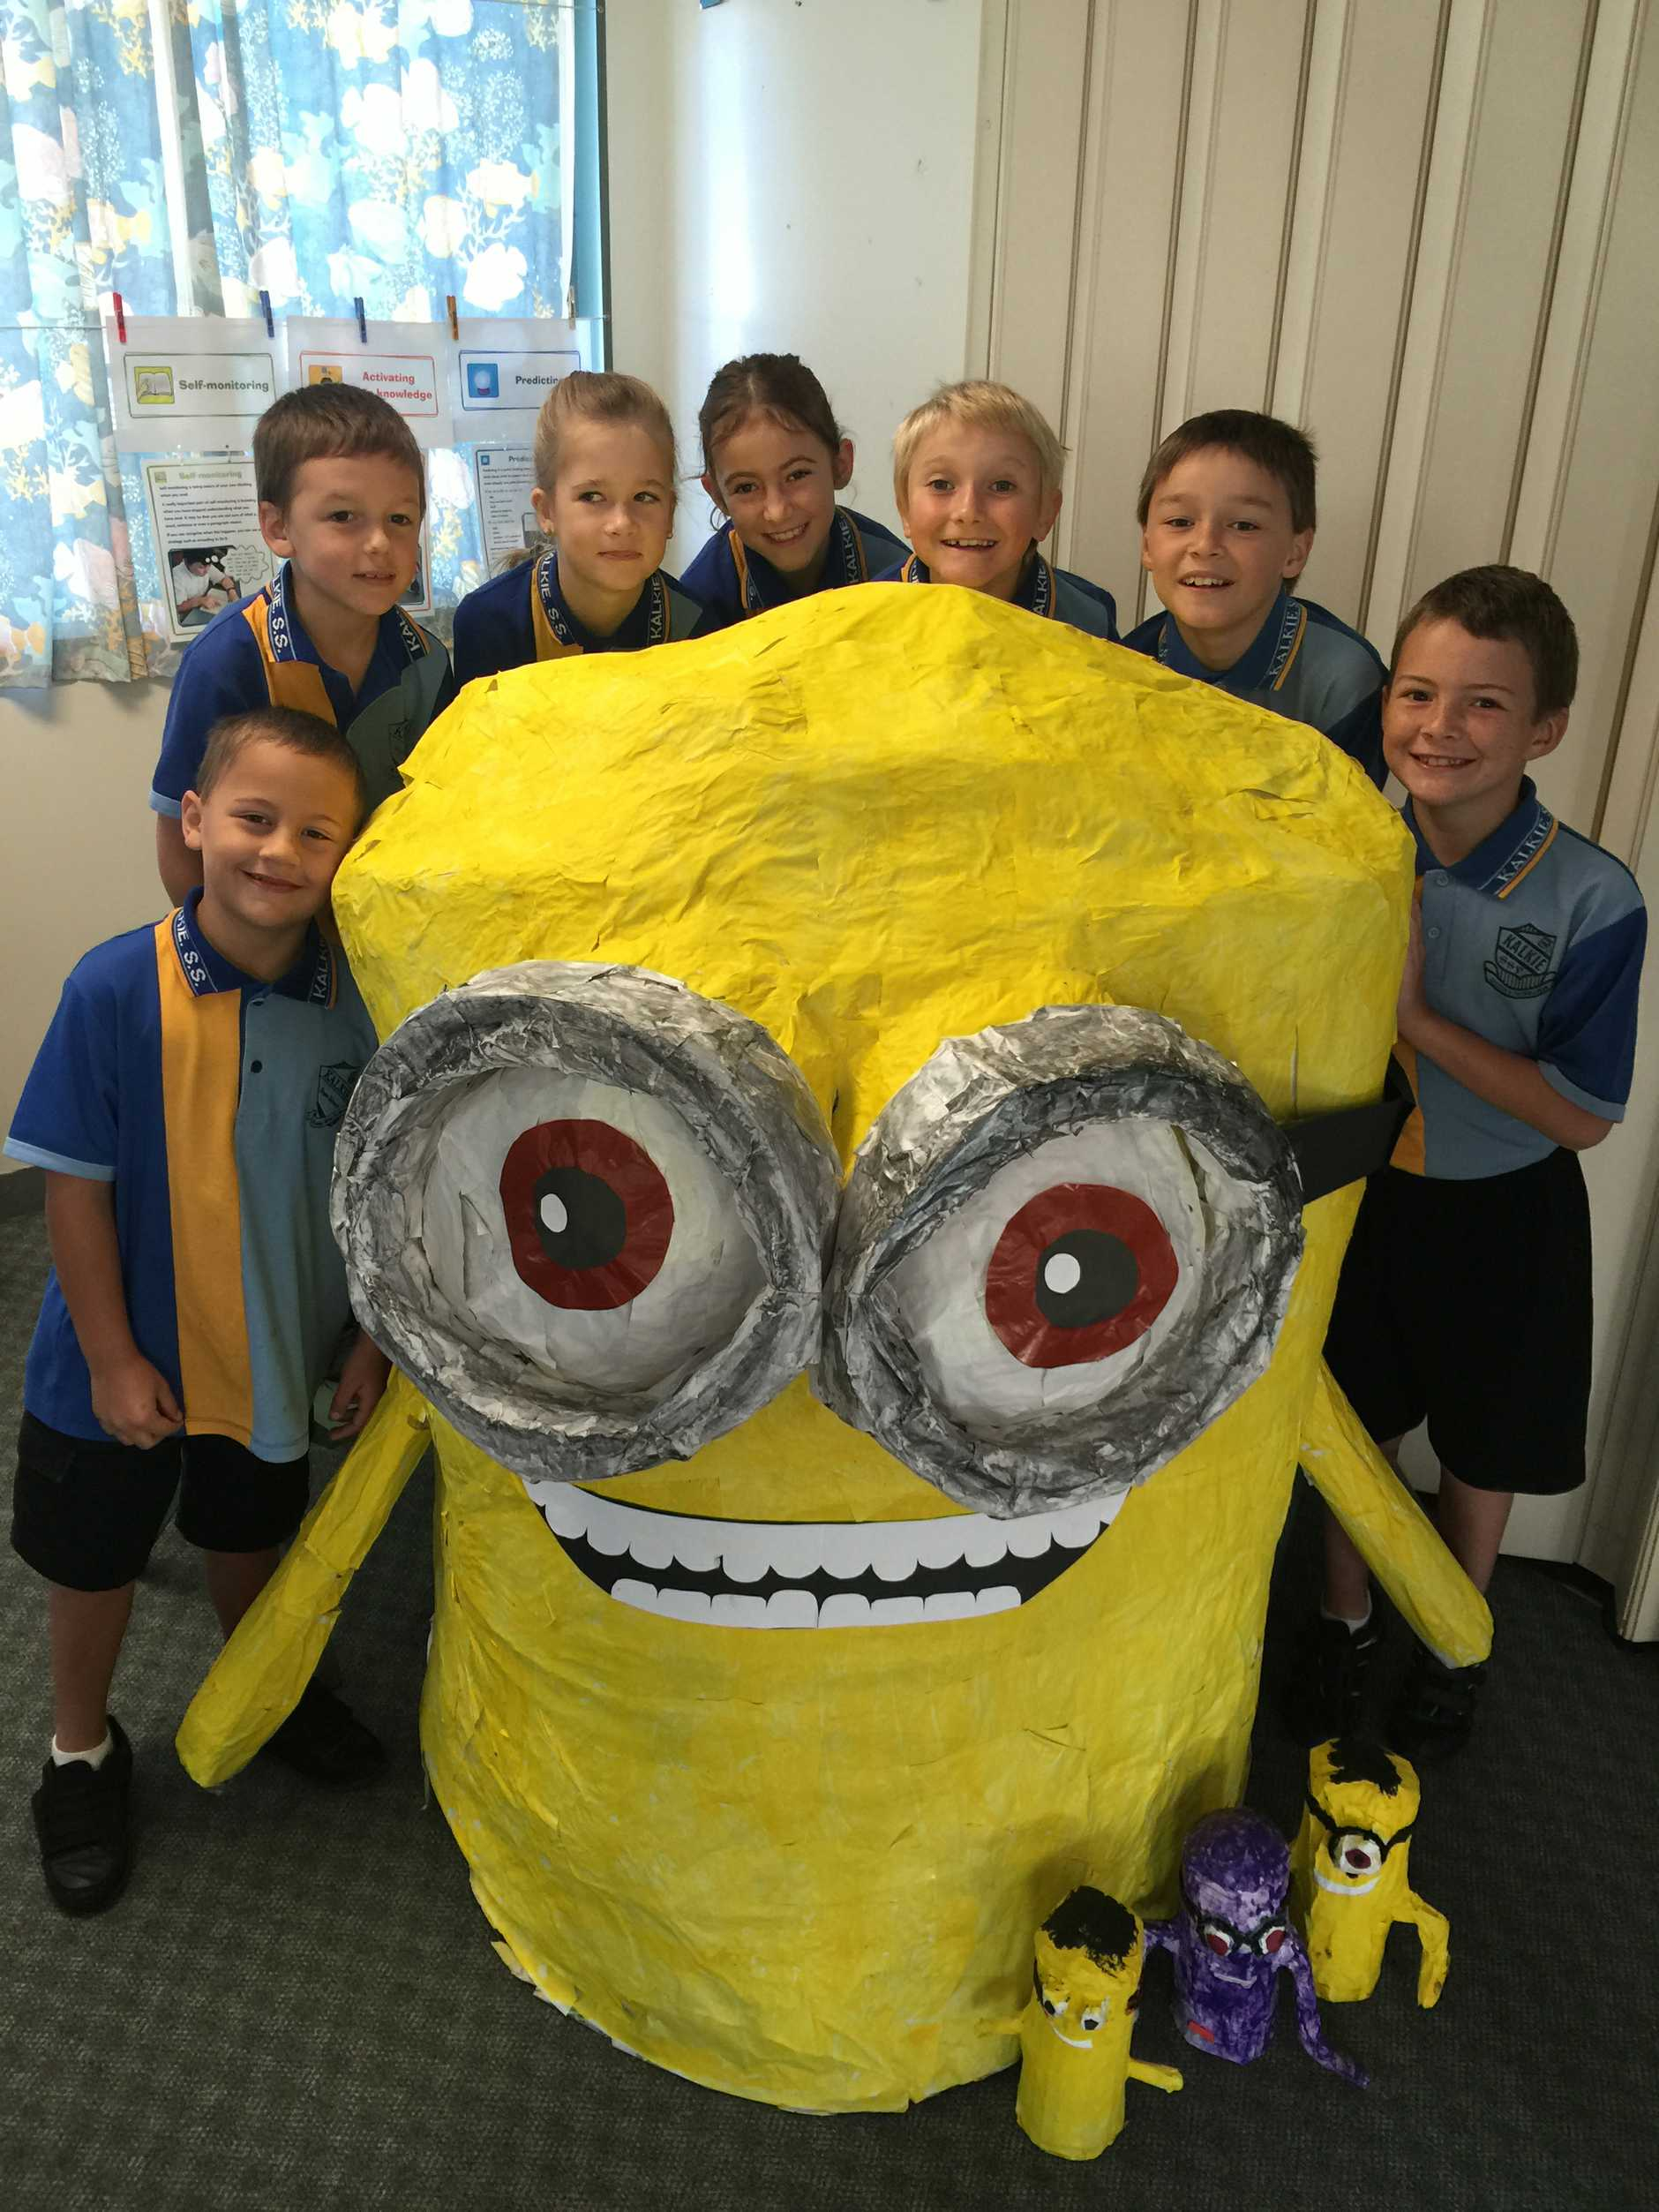 Pictured left to right Kalkie State School students Lance Wano, Josh Clark, Hallee Harris, Summer Towers, Trent Hitchenor, Jake Skerke, and Jordan Landman, with Minion Kal.